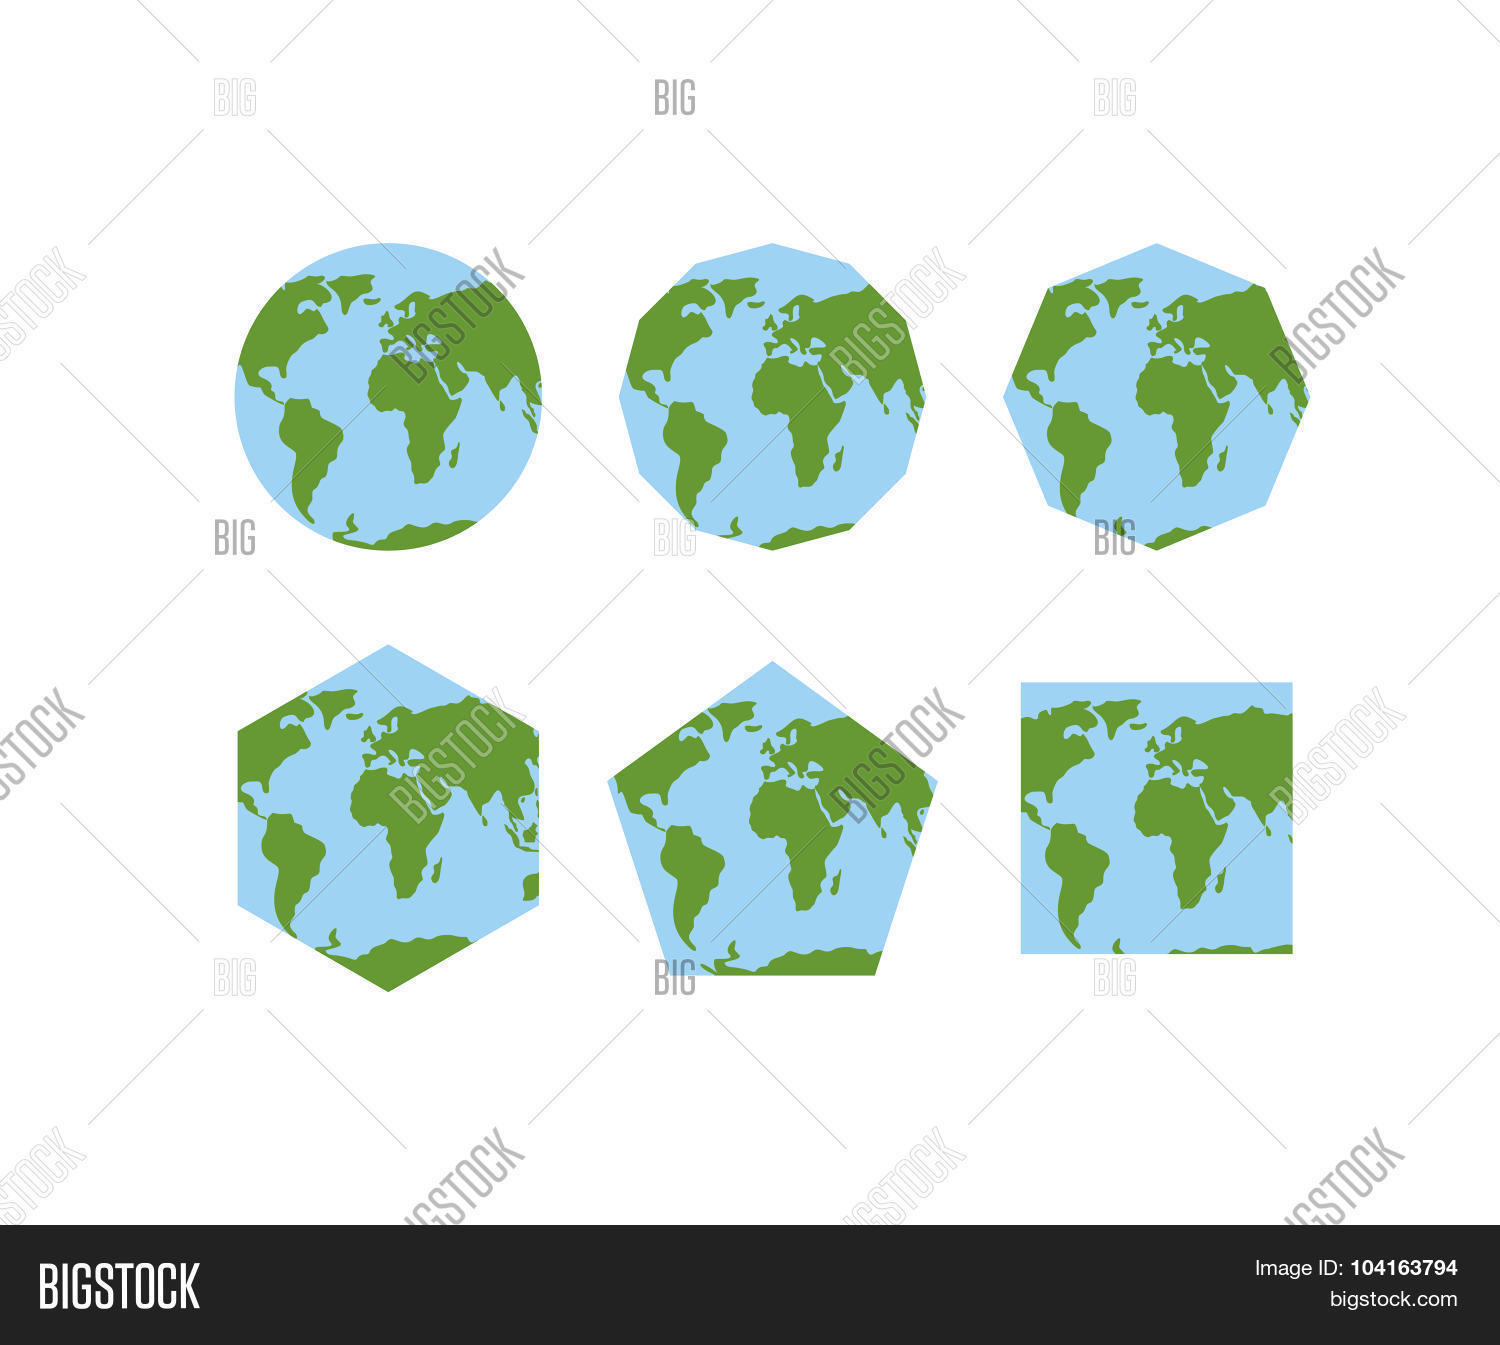 Set geometric shapes vector photo free trial bigstock set of geometric shapes of world atlases map of planet earth earth is round gumiabroncs Choice Image